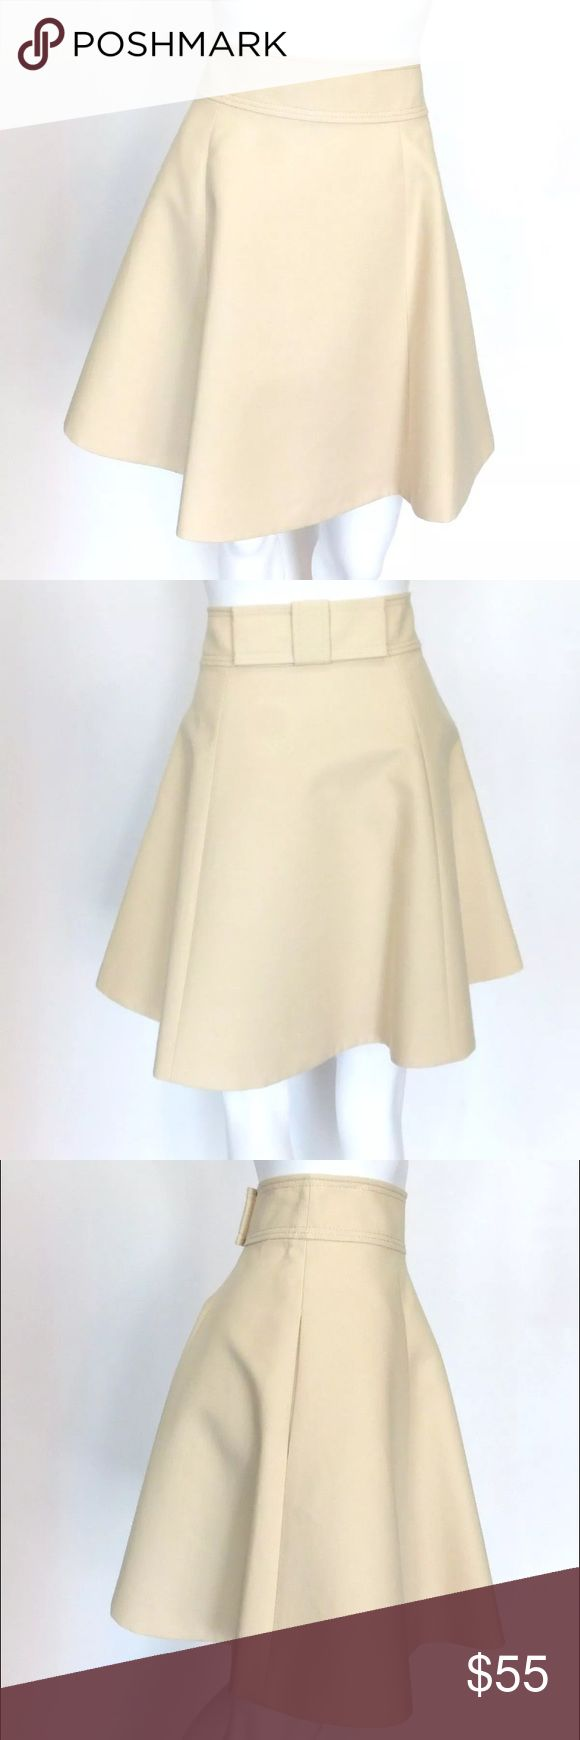 Kate Spade Terra Skirt PreLOVED! Kate Spade Terra Skirt From the Capri Italy Collection Color: Beige (Raw Almond) Size 6 100 % Cotton Full Skirt Lined Pockets Adorable Flat bow on the back Retail $298.00 kate spade Skirts A-Line or Full